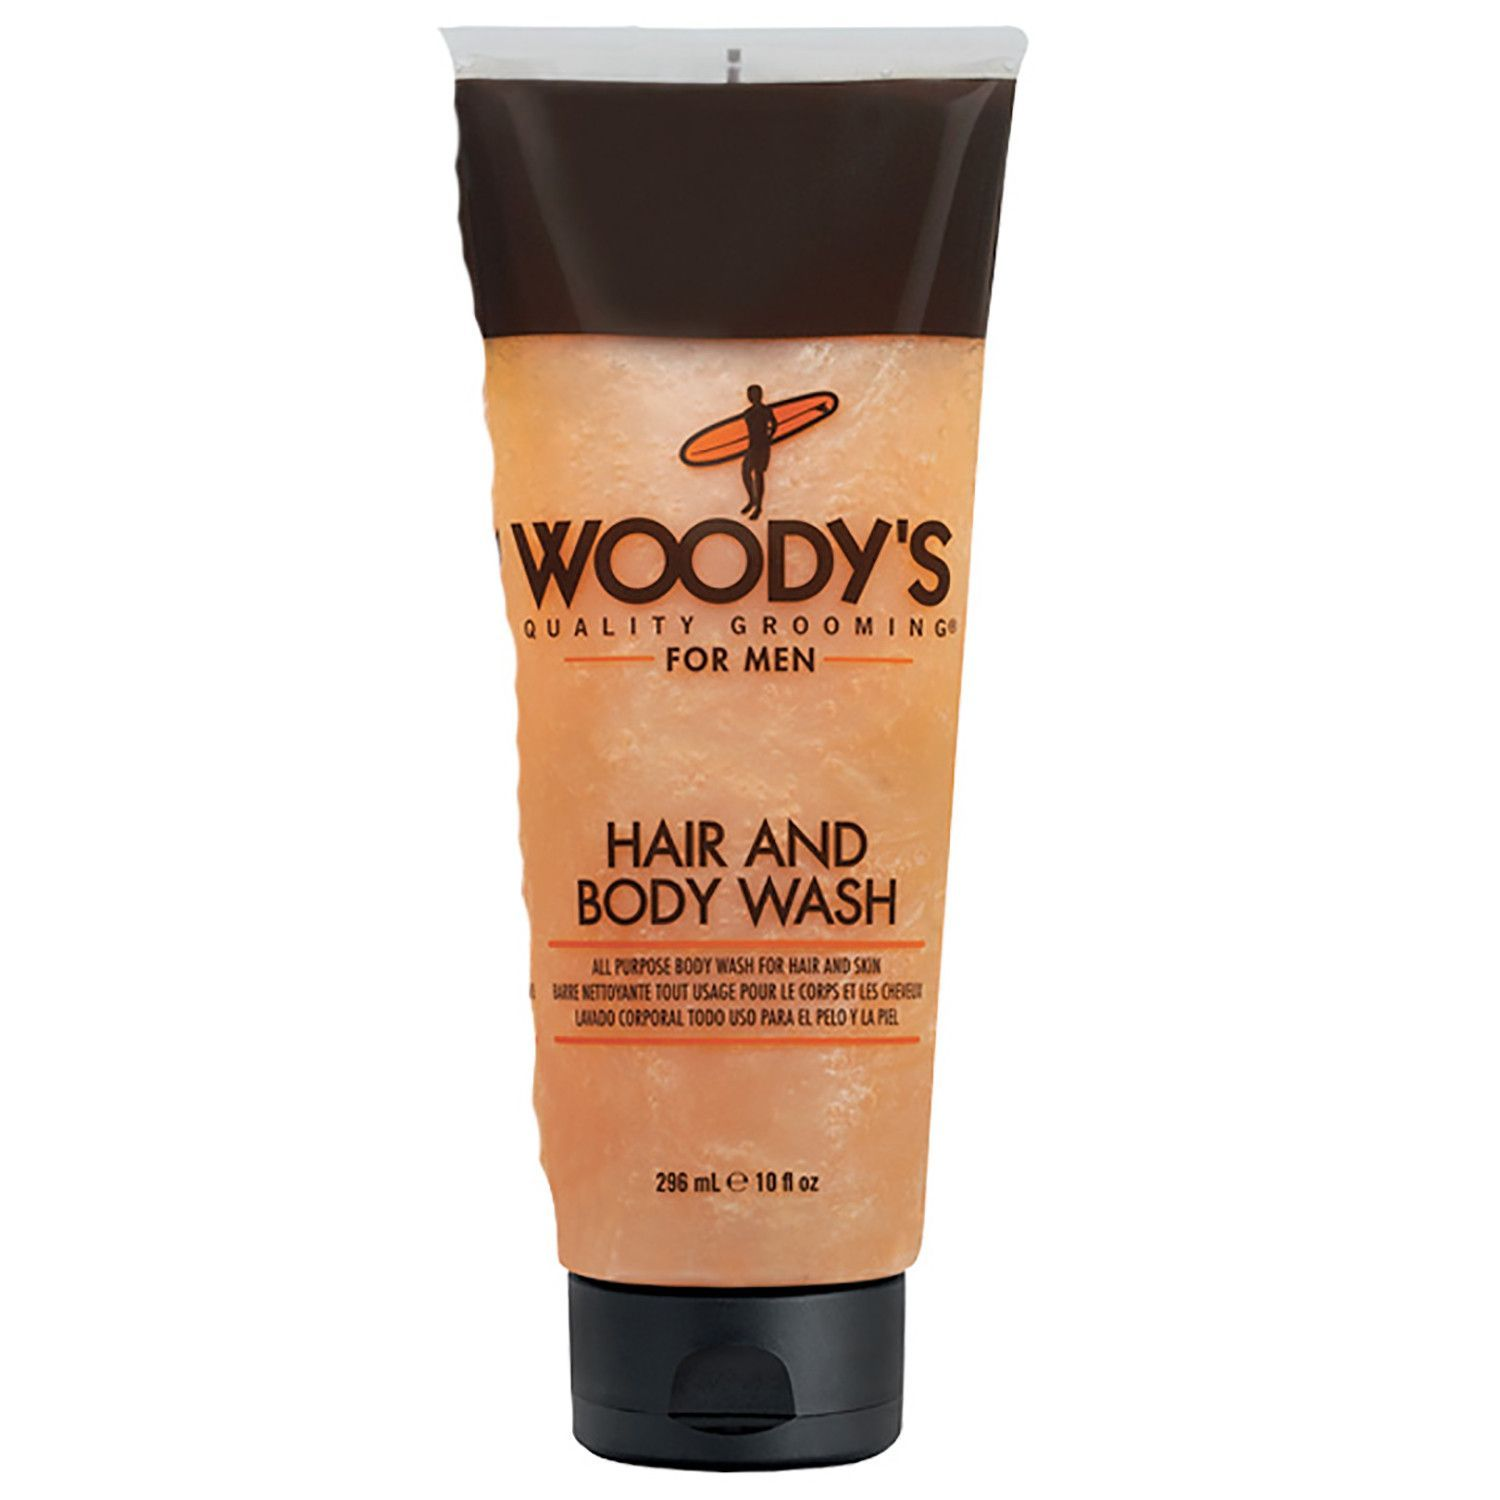 Woody's for Men Hair and Body Wash